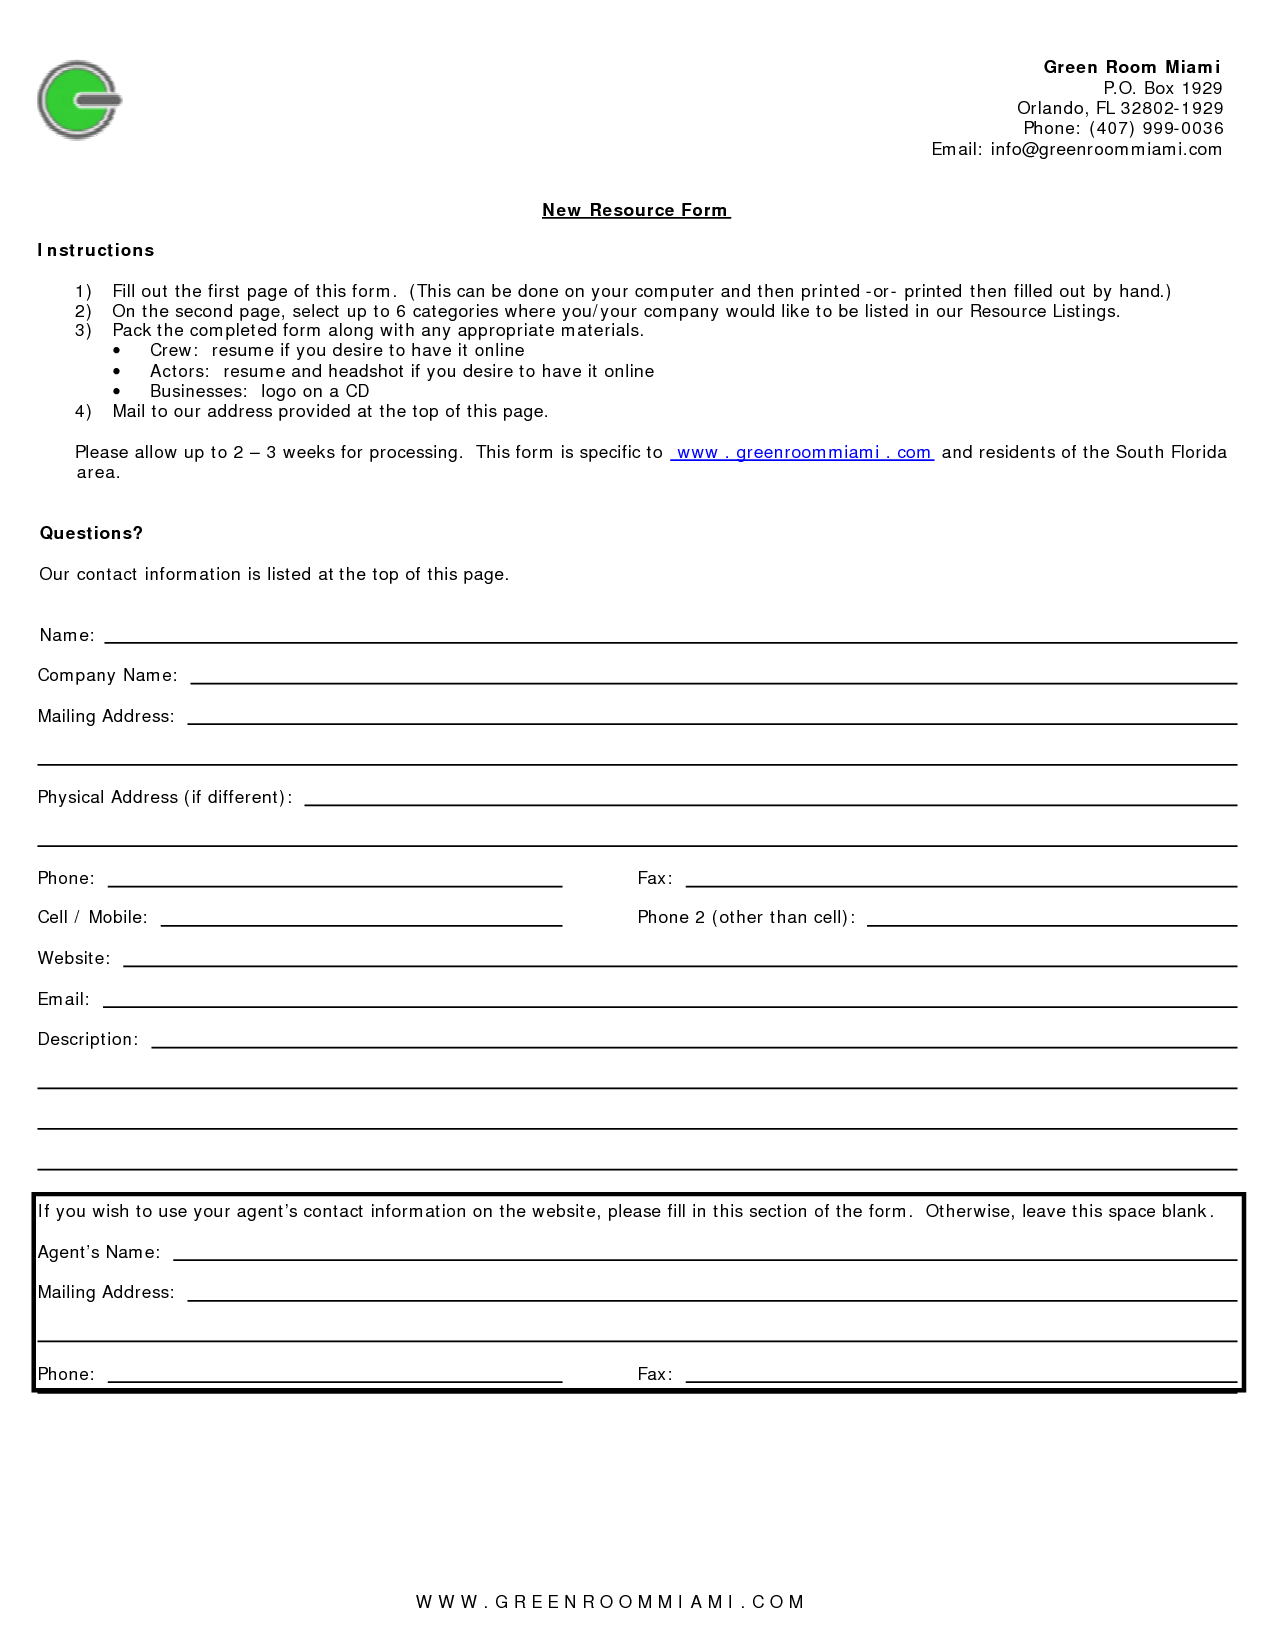 Fill In The Blank Resume Pdf Httpresumecareerfofill In